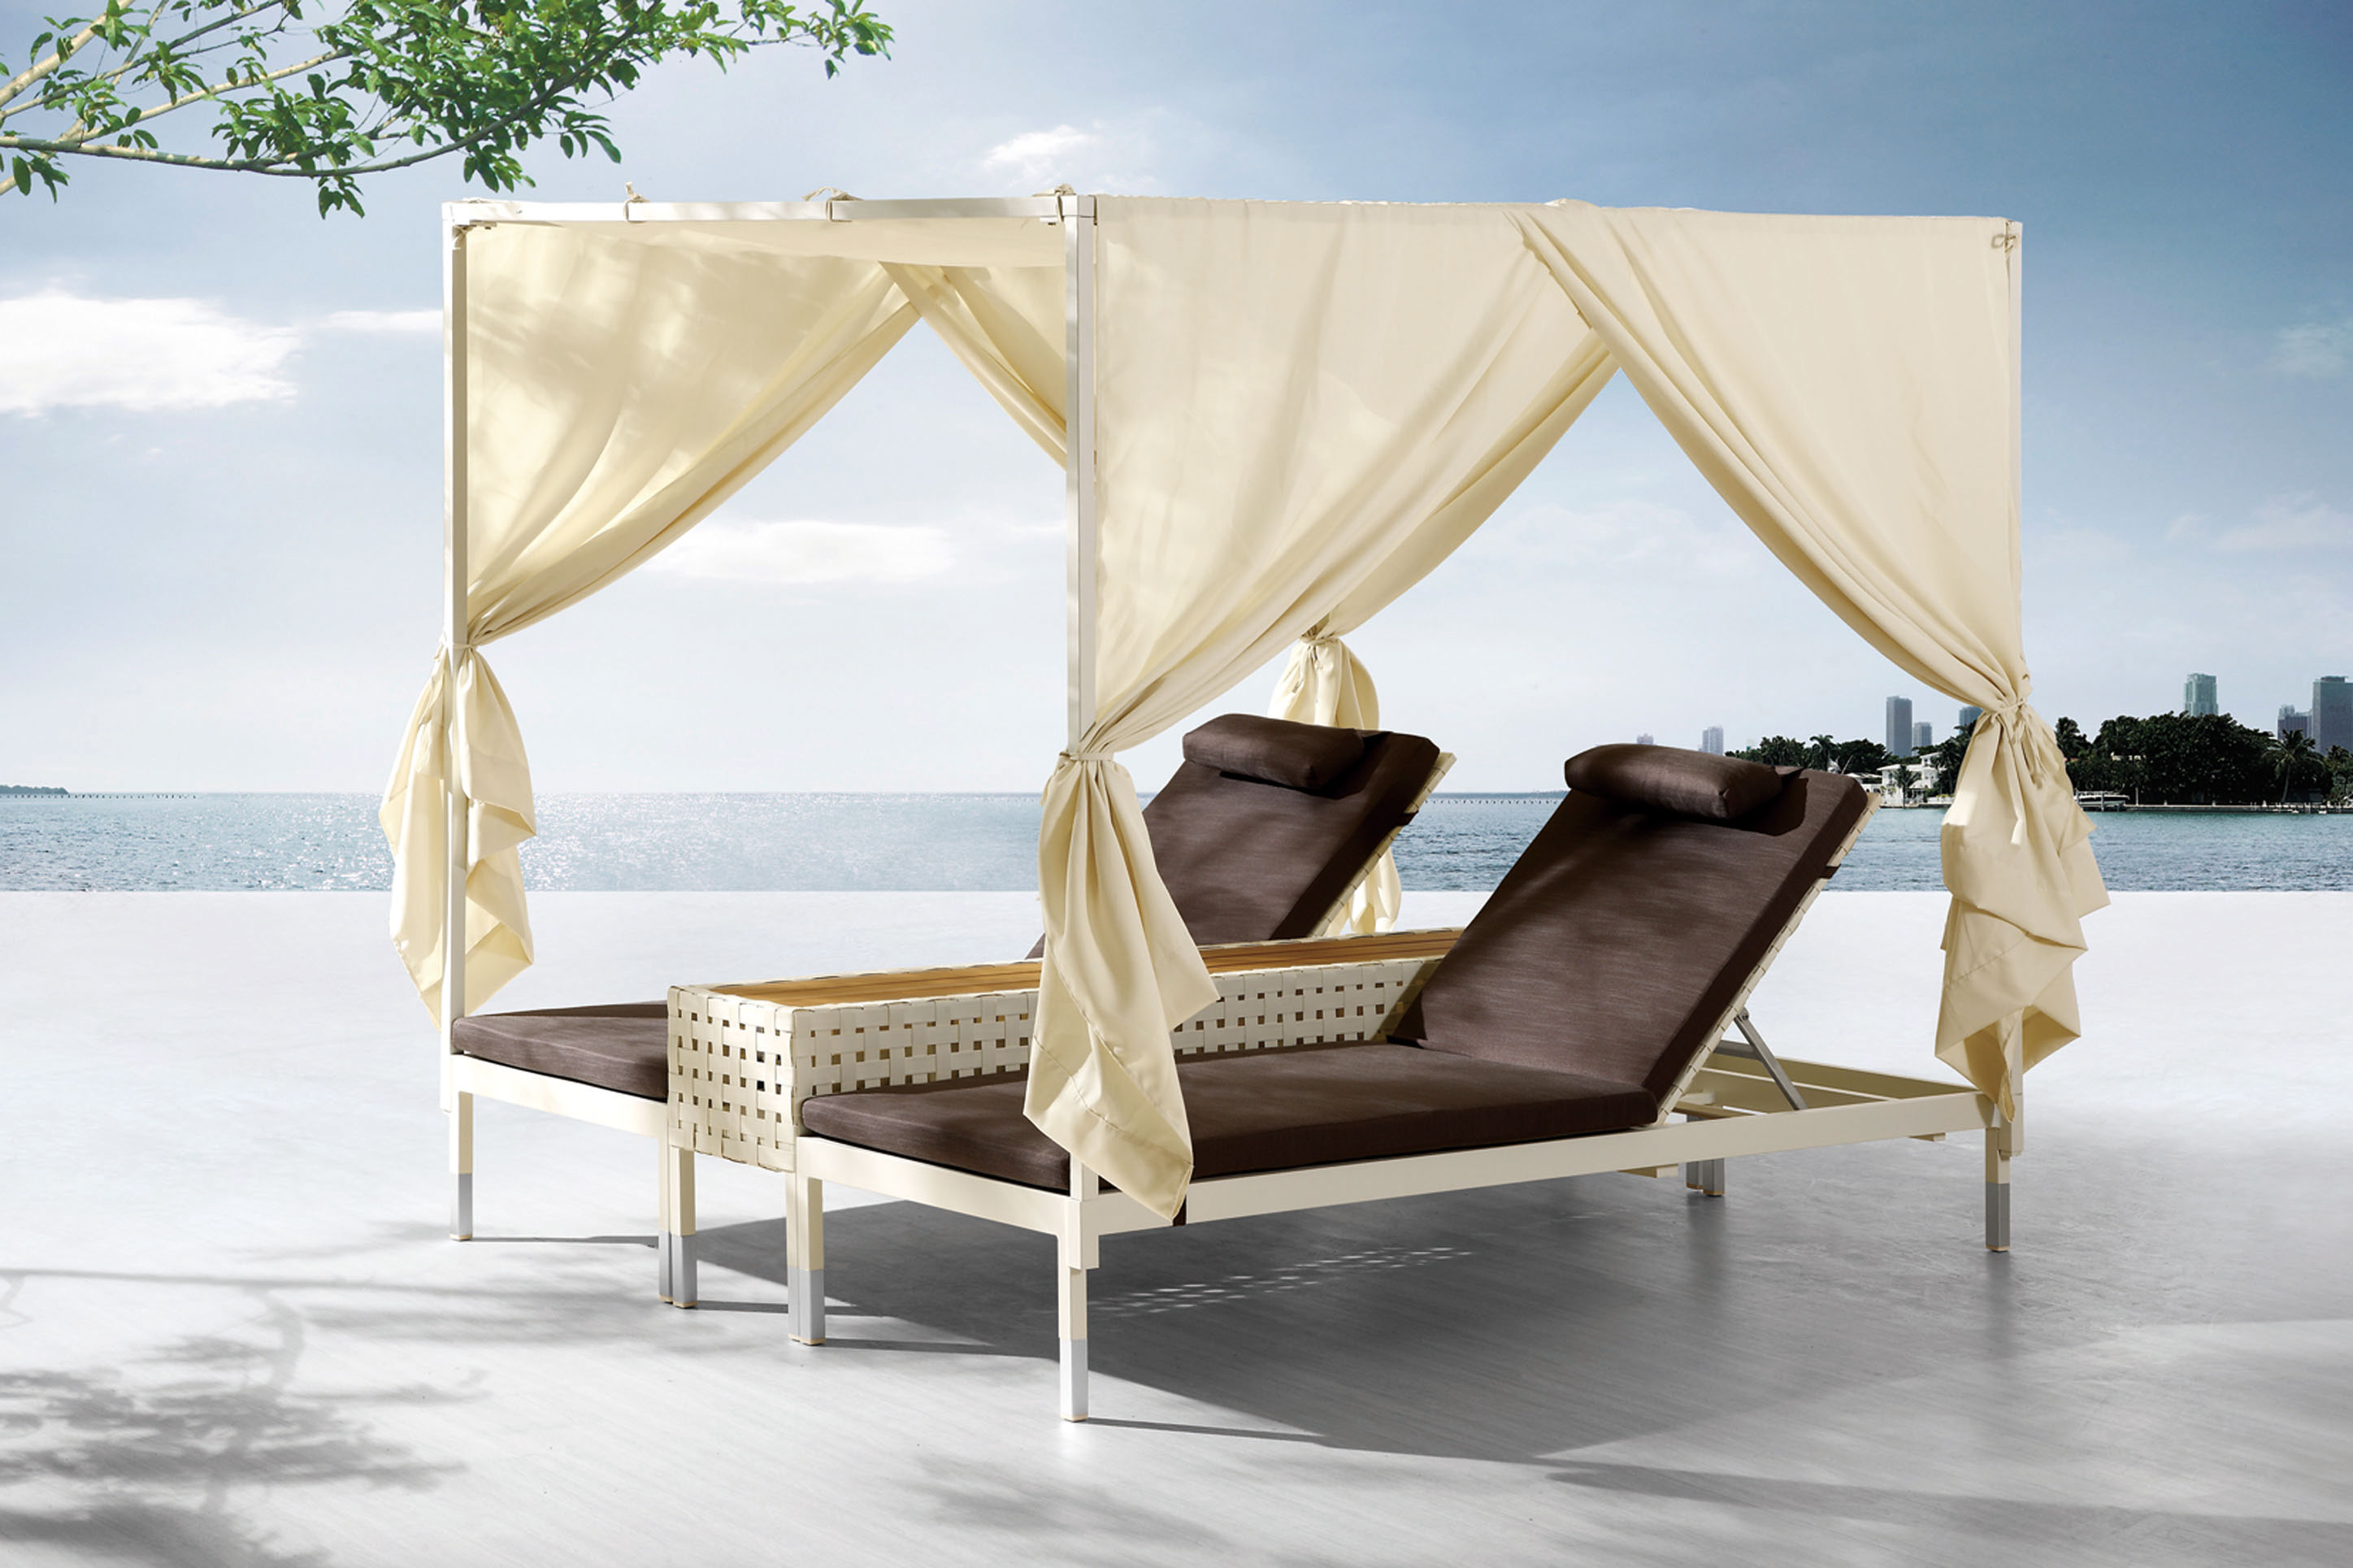 high sunbed for outdoor use, outdoor sunbed, double sunbed with wooden table in the middle, connected double single sunbeds, krevataki exoterikou xorou me kourtina, curtained double sunbed for outdoor use, sunbeds with adjustable back, rithmizomeni raxi k